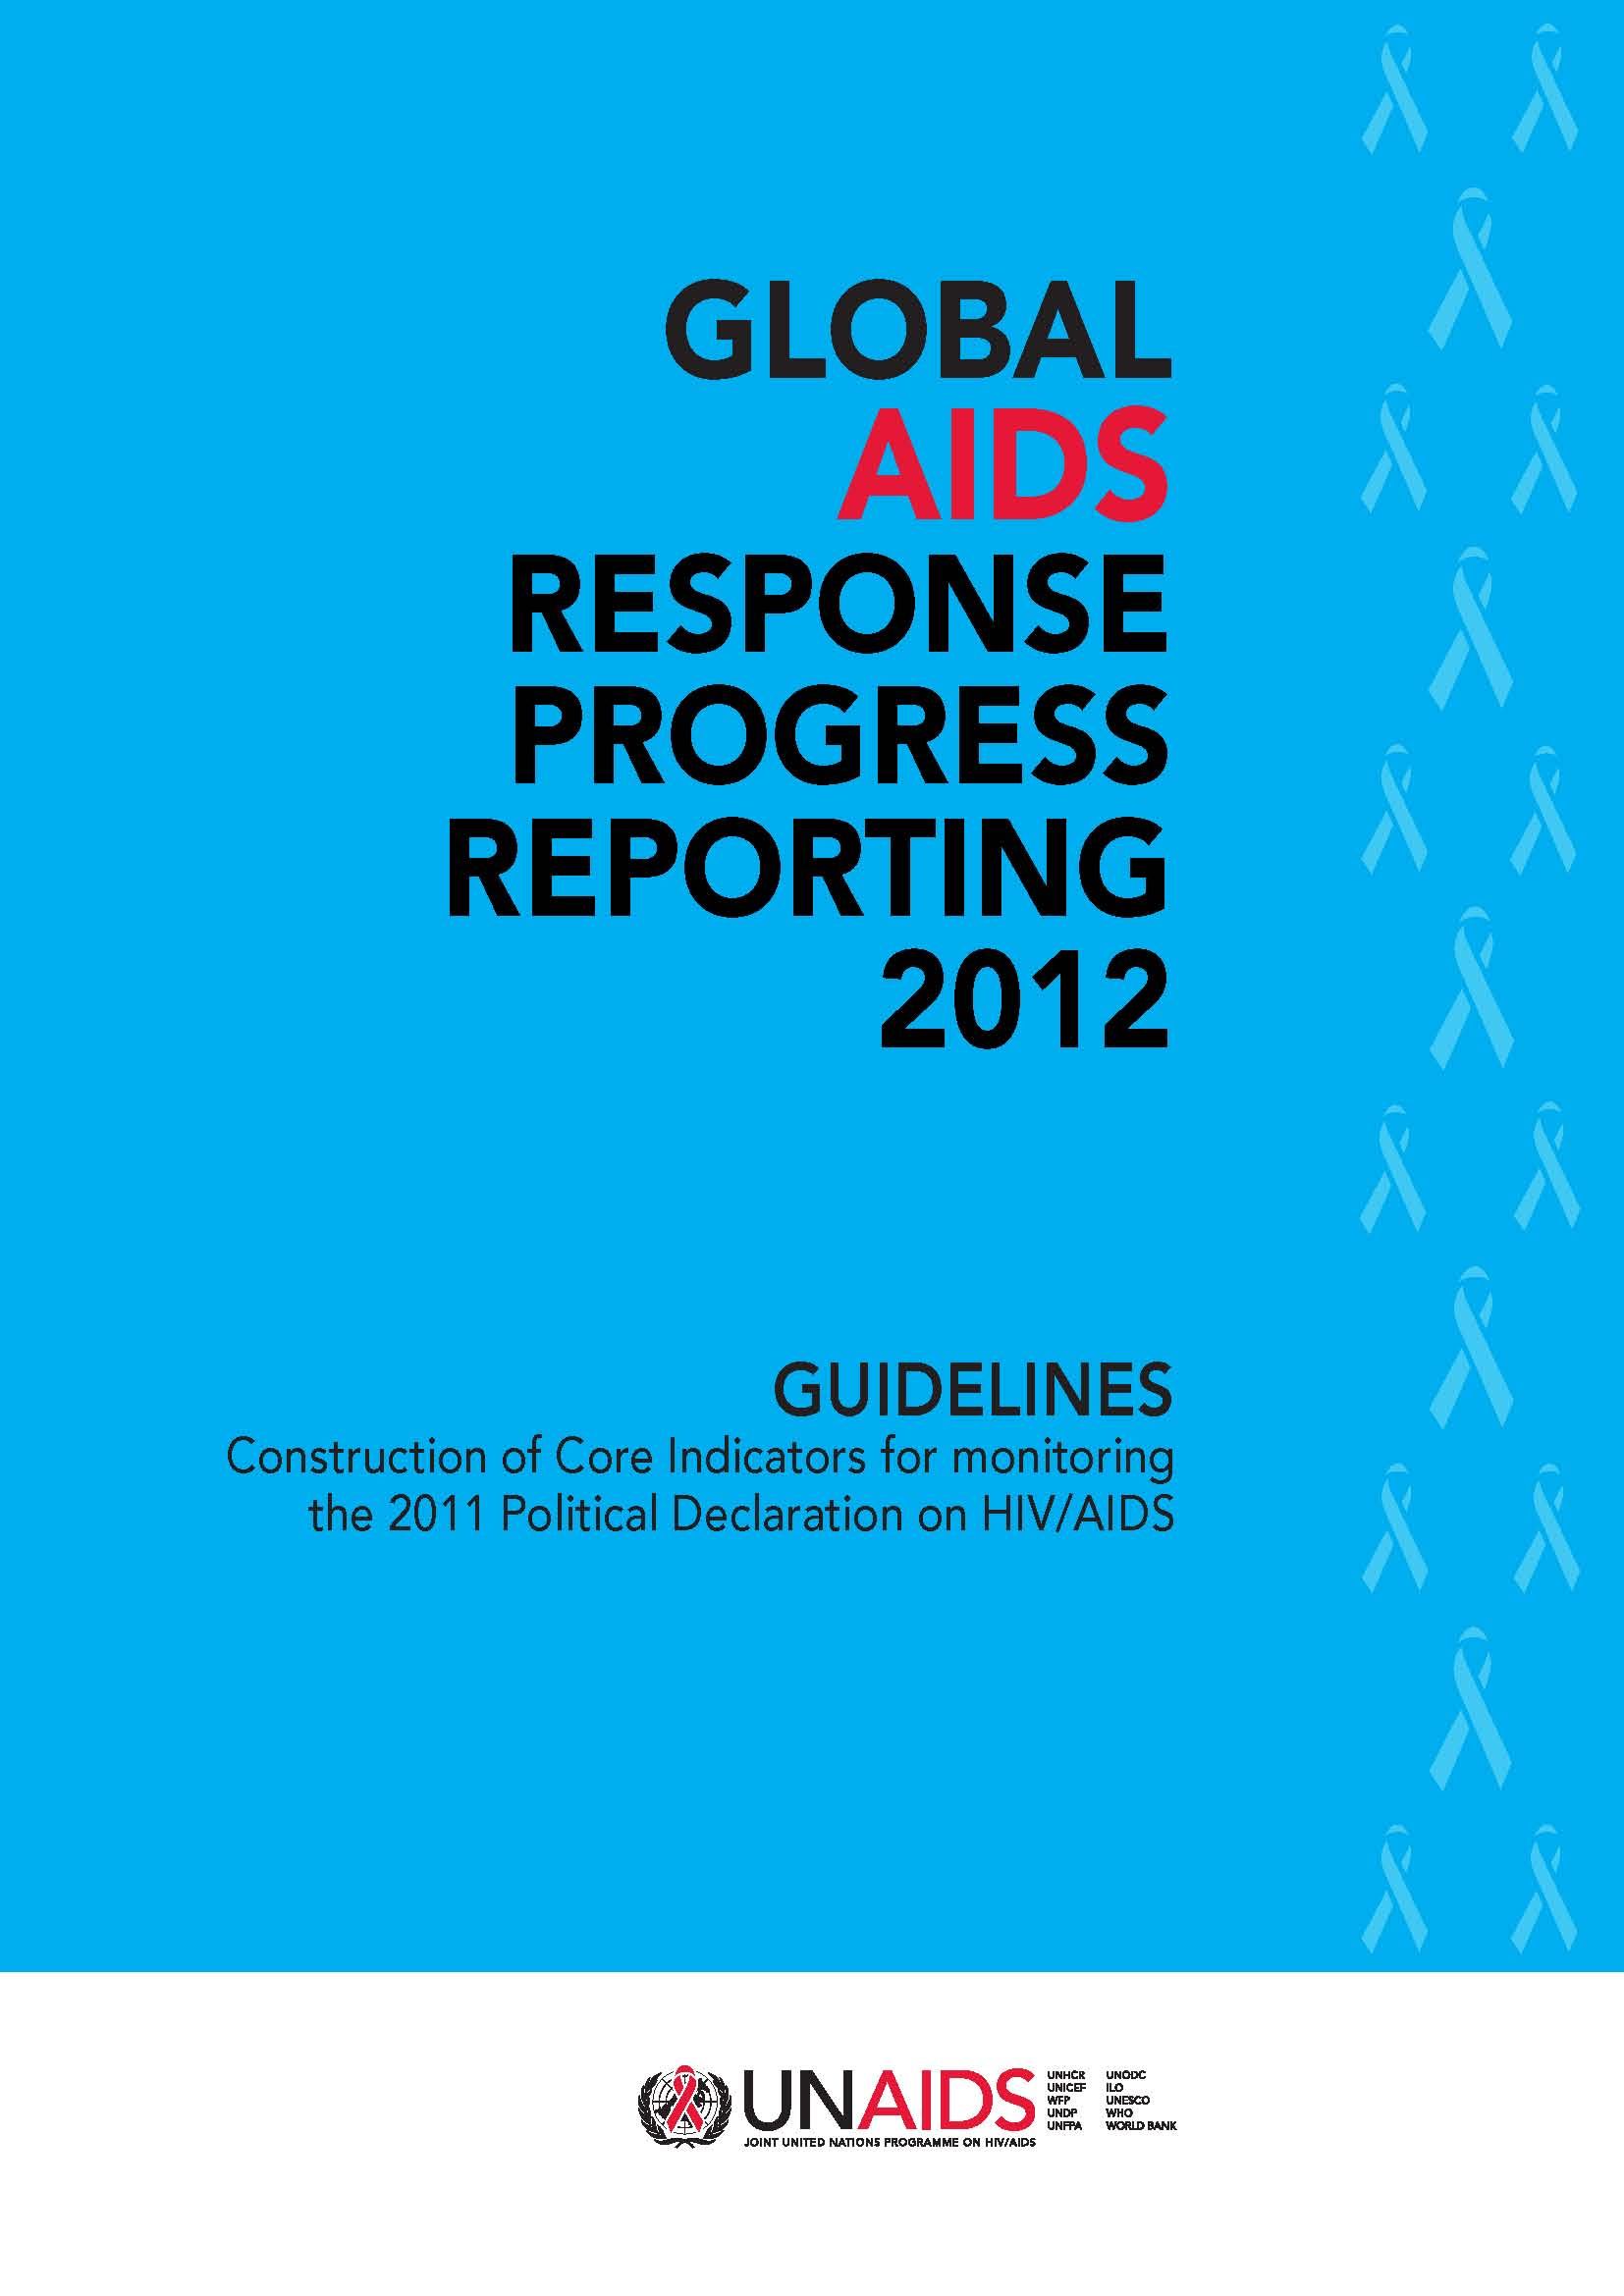 GLOBAL AIDS RESPONSE PROGRESS REPORTING 2012